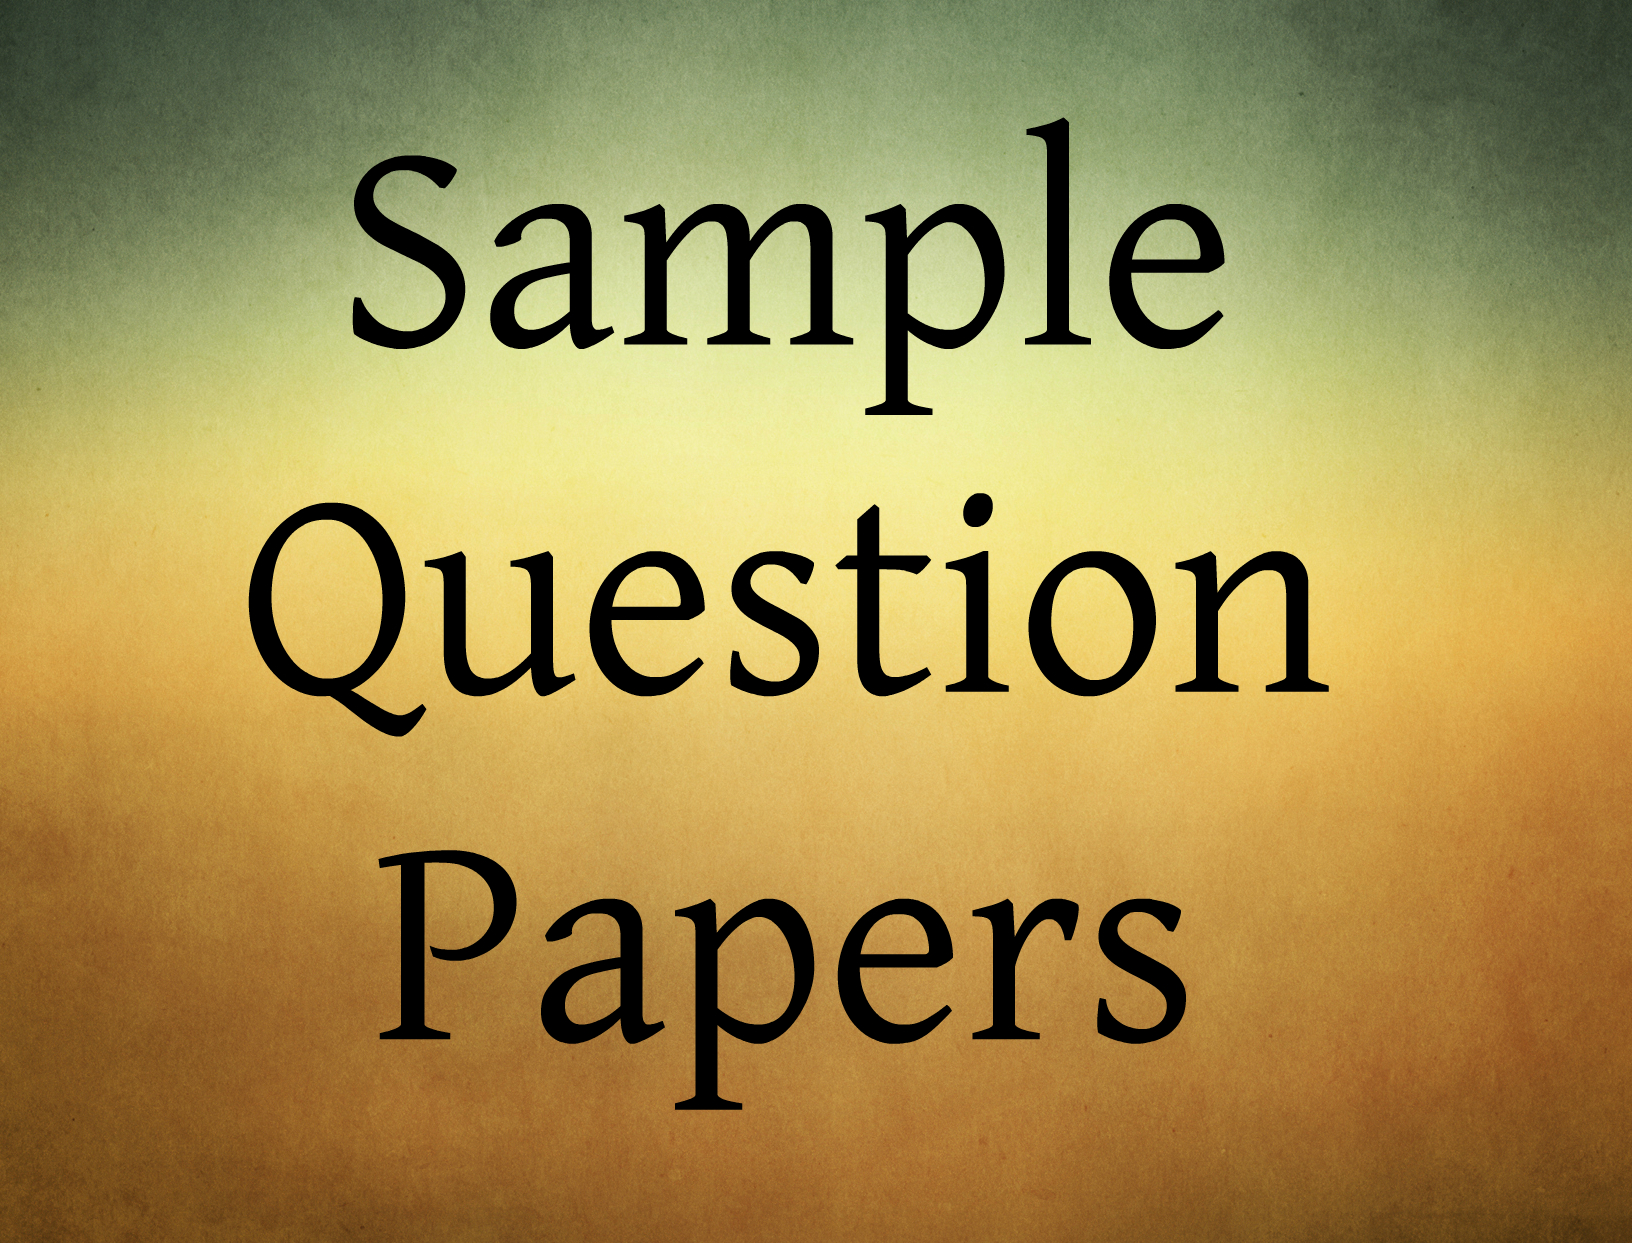 Sample question papers